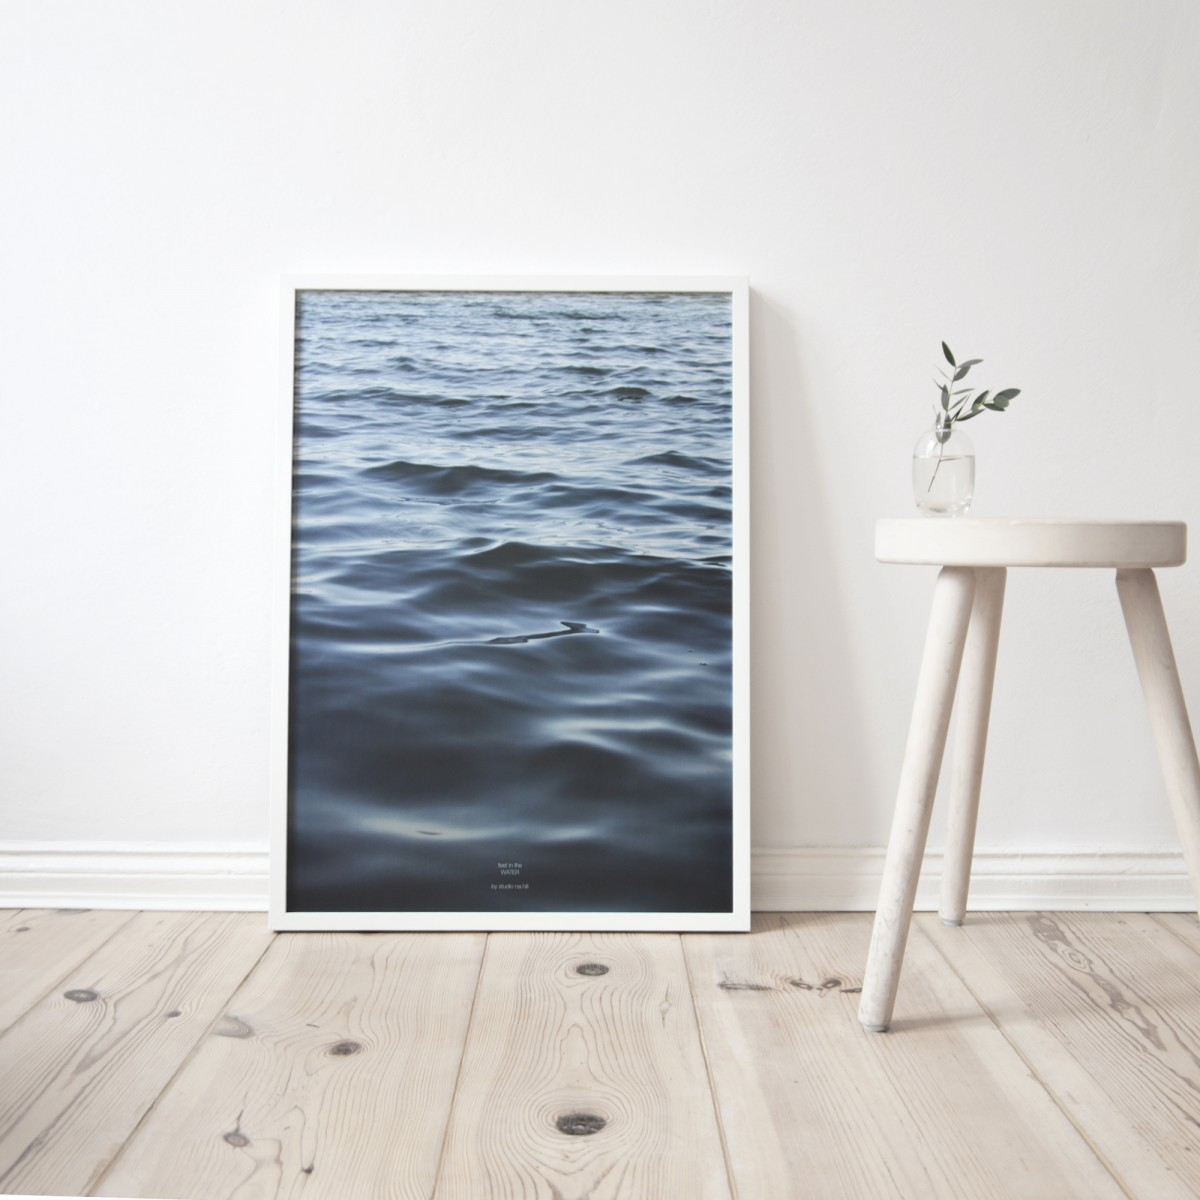 na.hili feet in the WATER - A3 Artprint - Poster